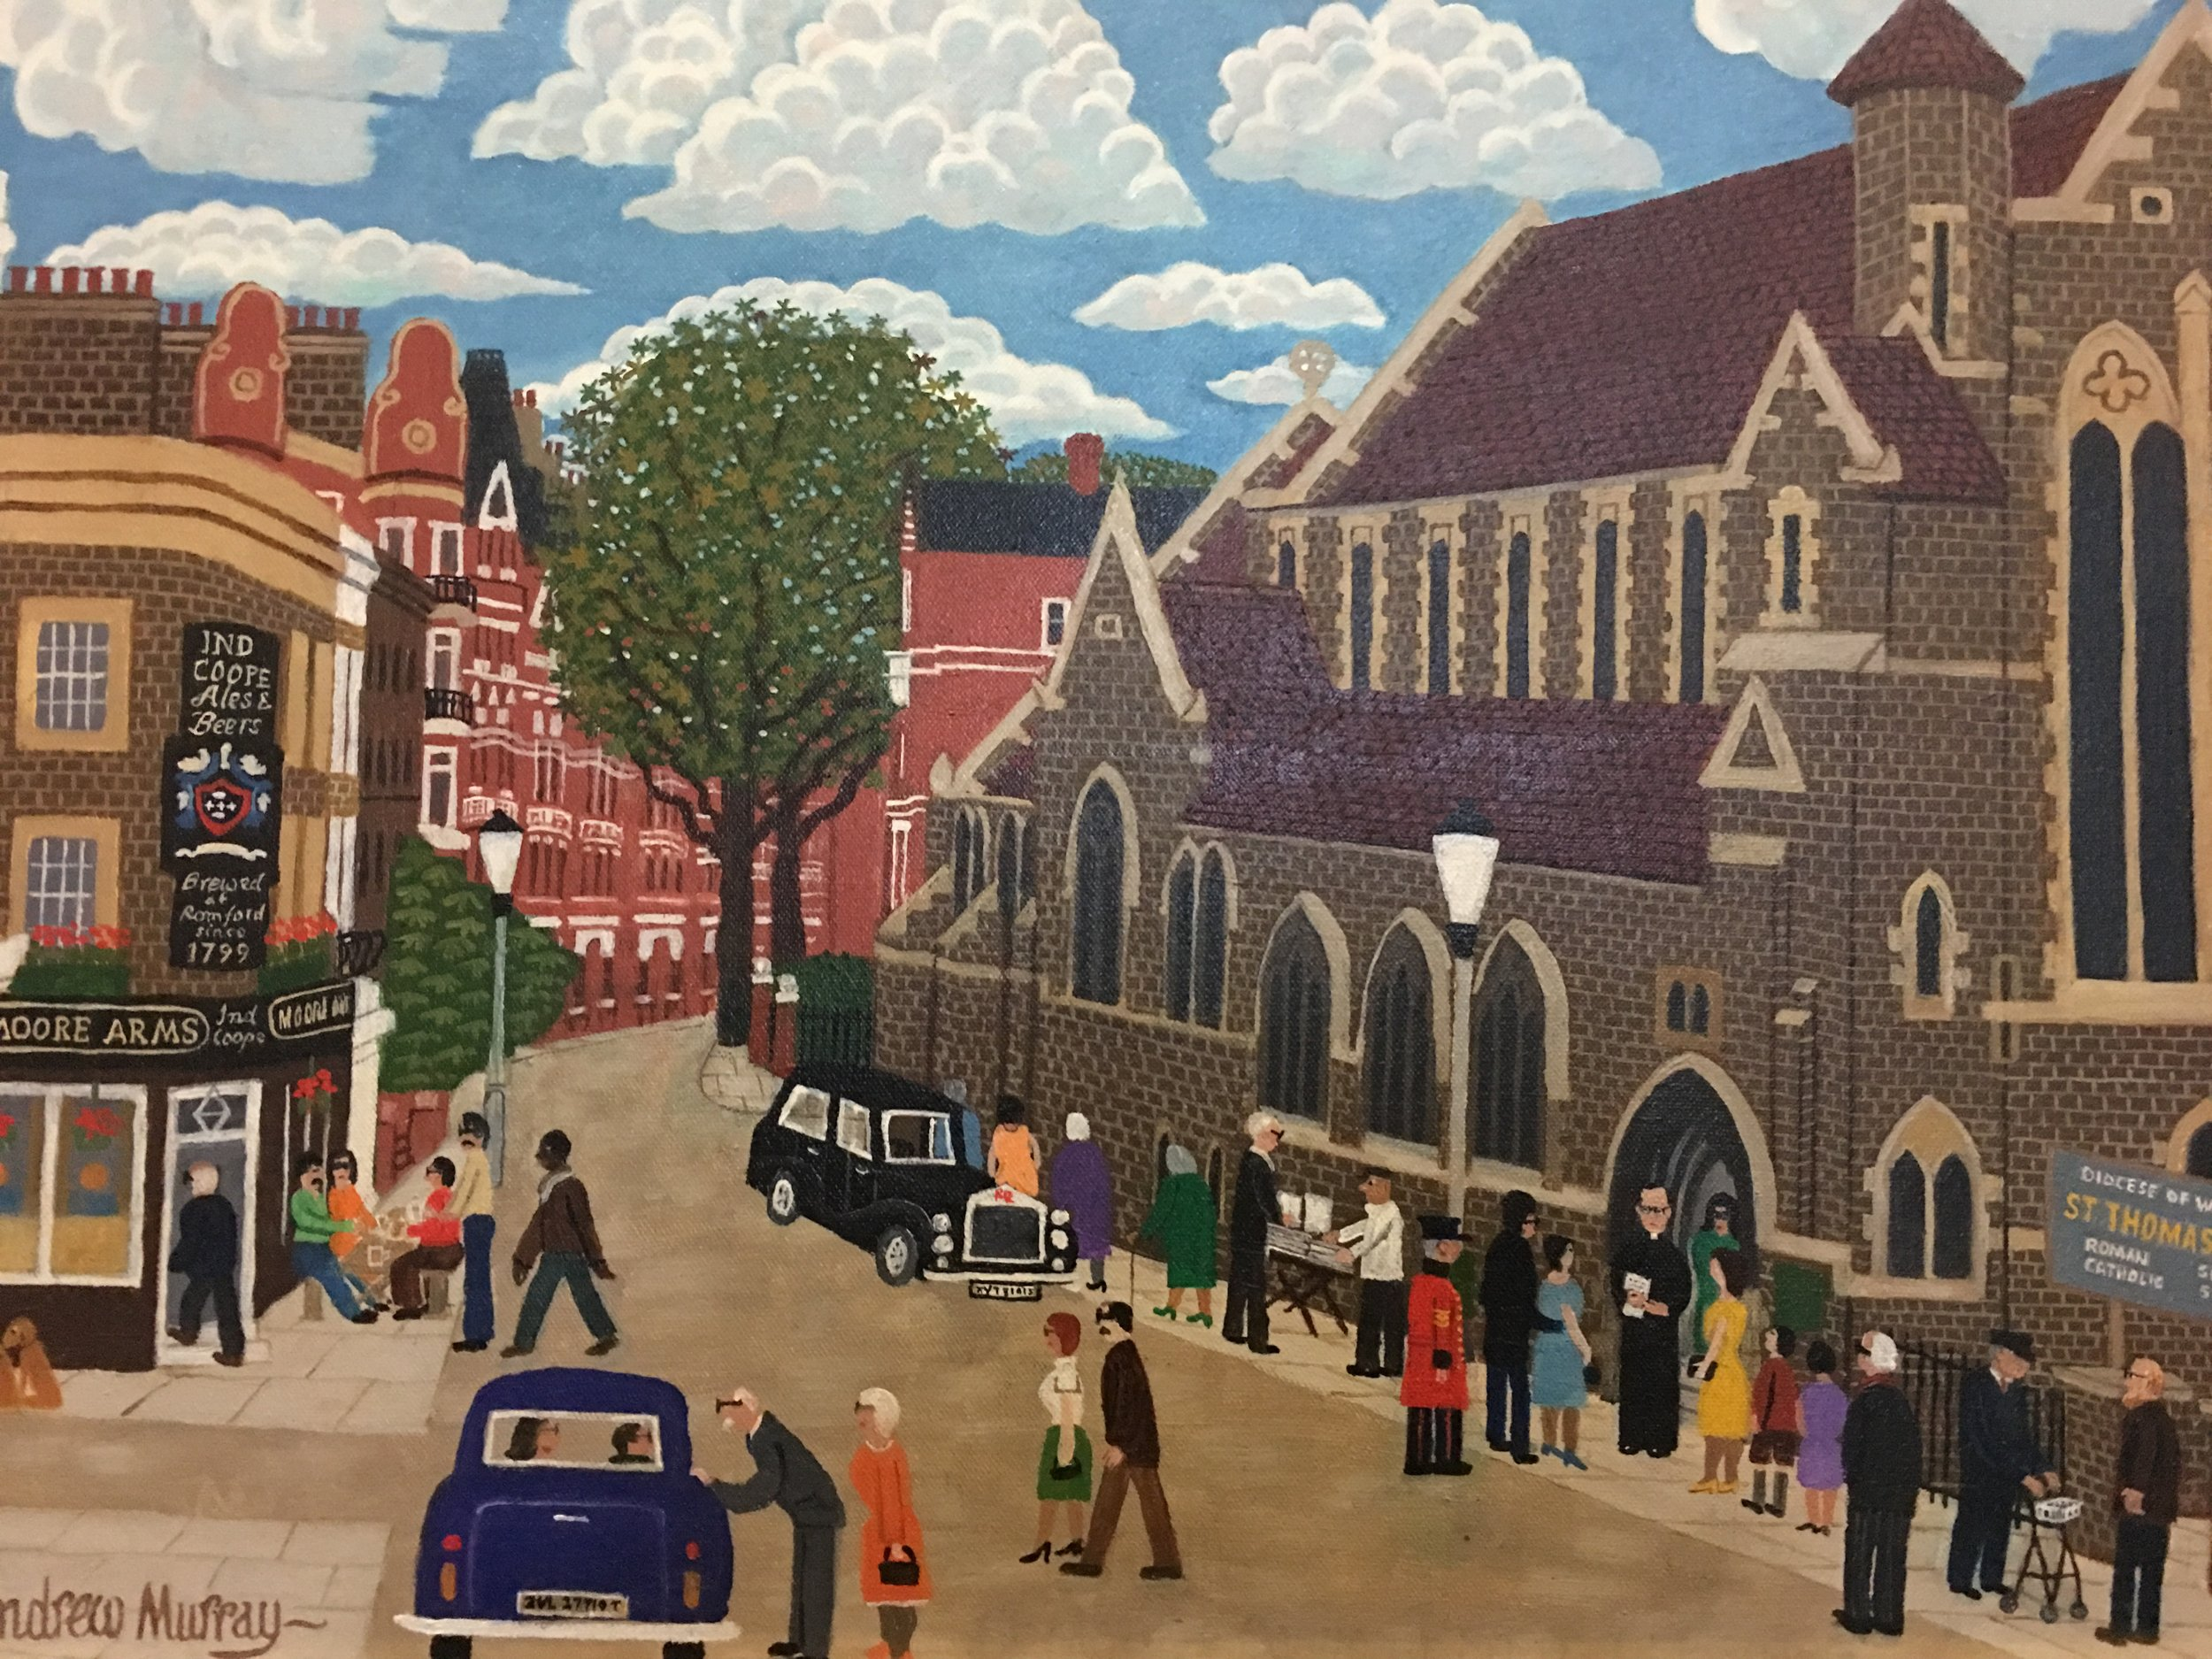 Andrew Murray's Oil Painting of St Mary's Chelsea